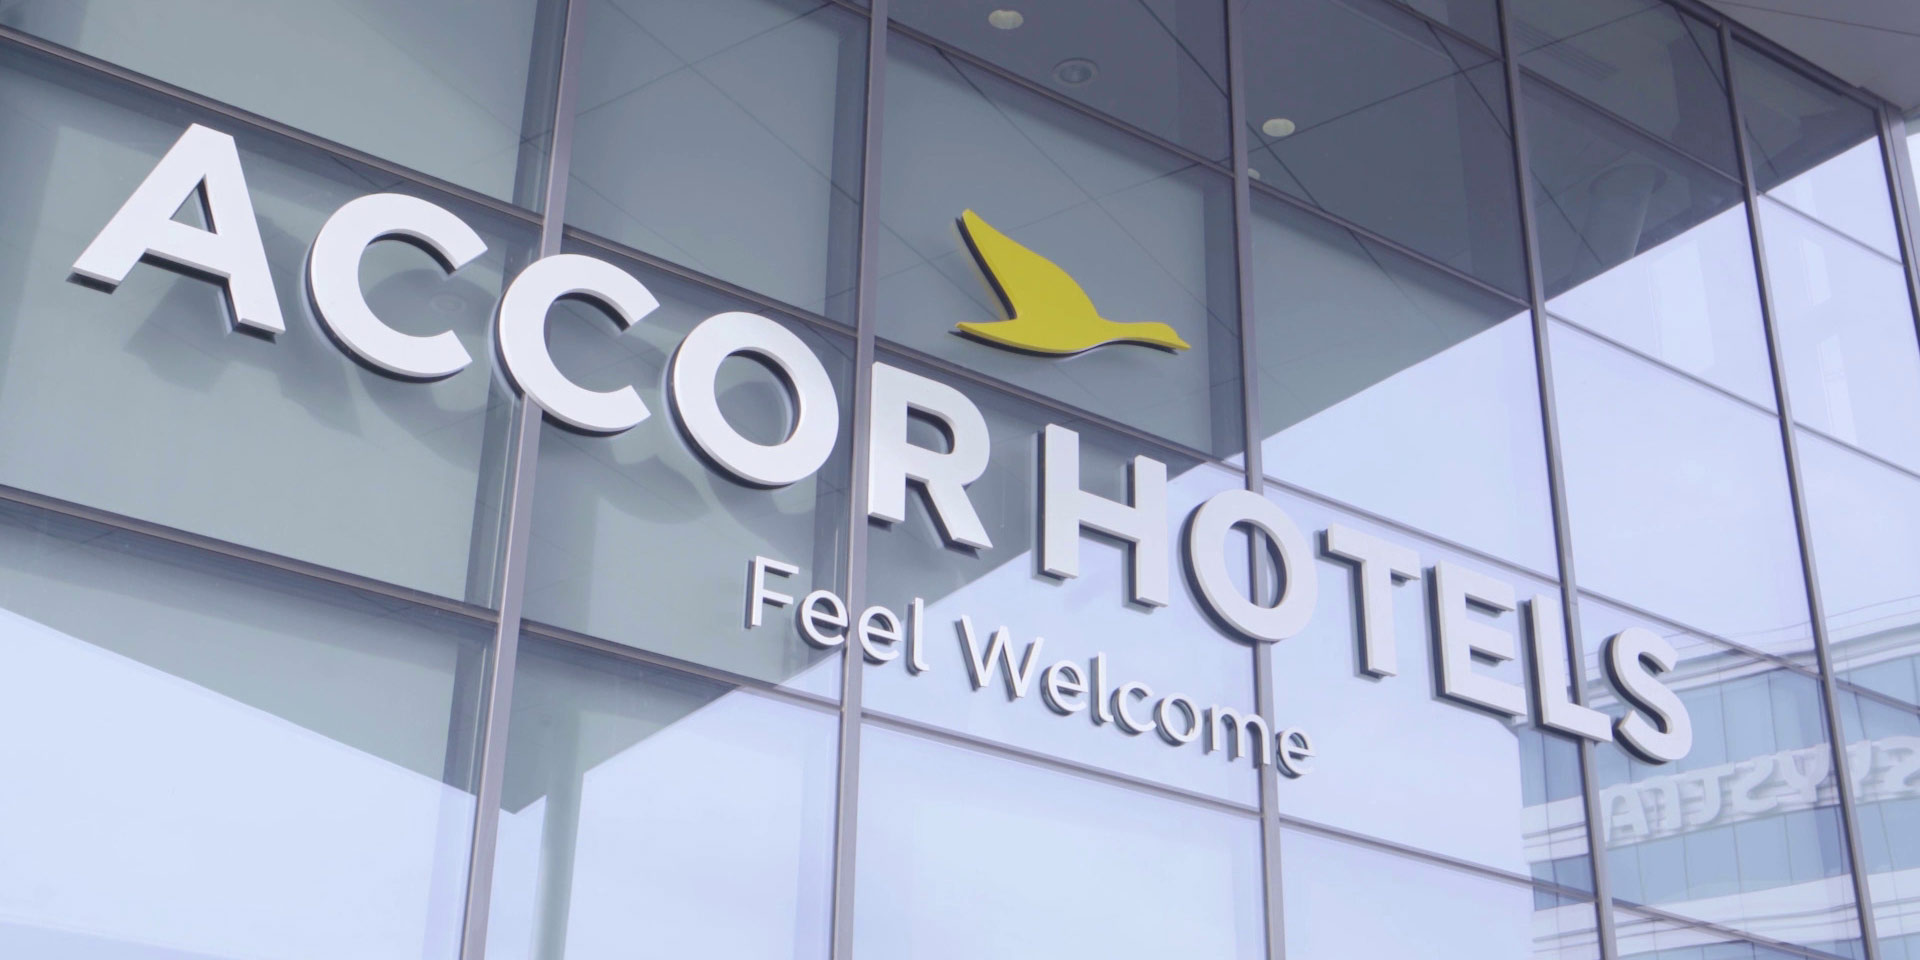 AccorHotels announces agreement to sell majority stake of AccorInvest [Chain report included]